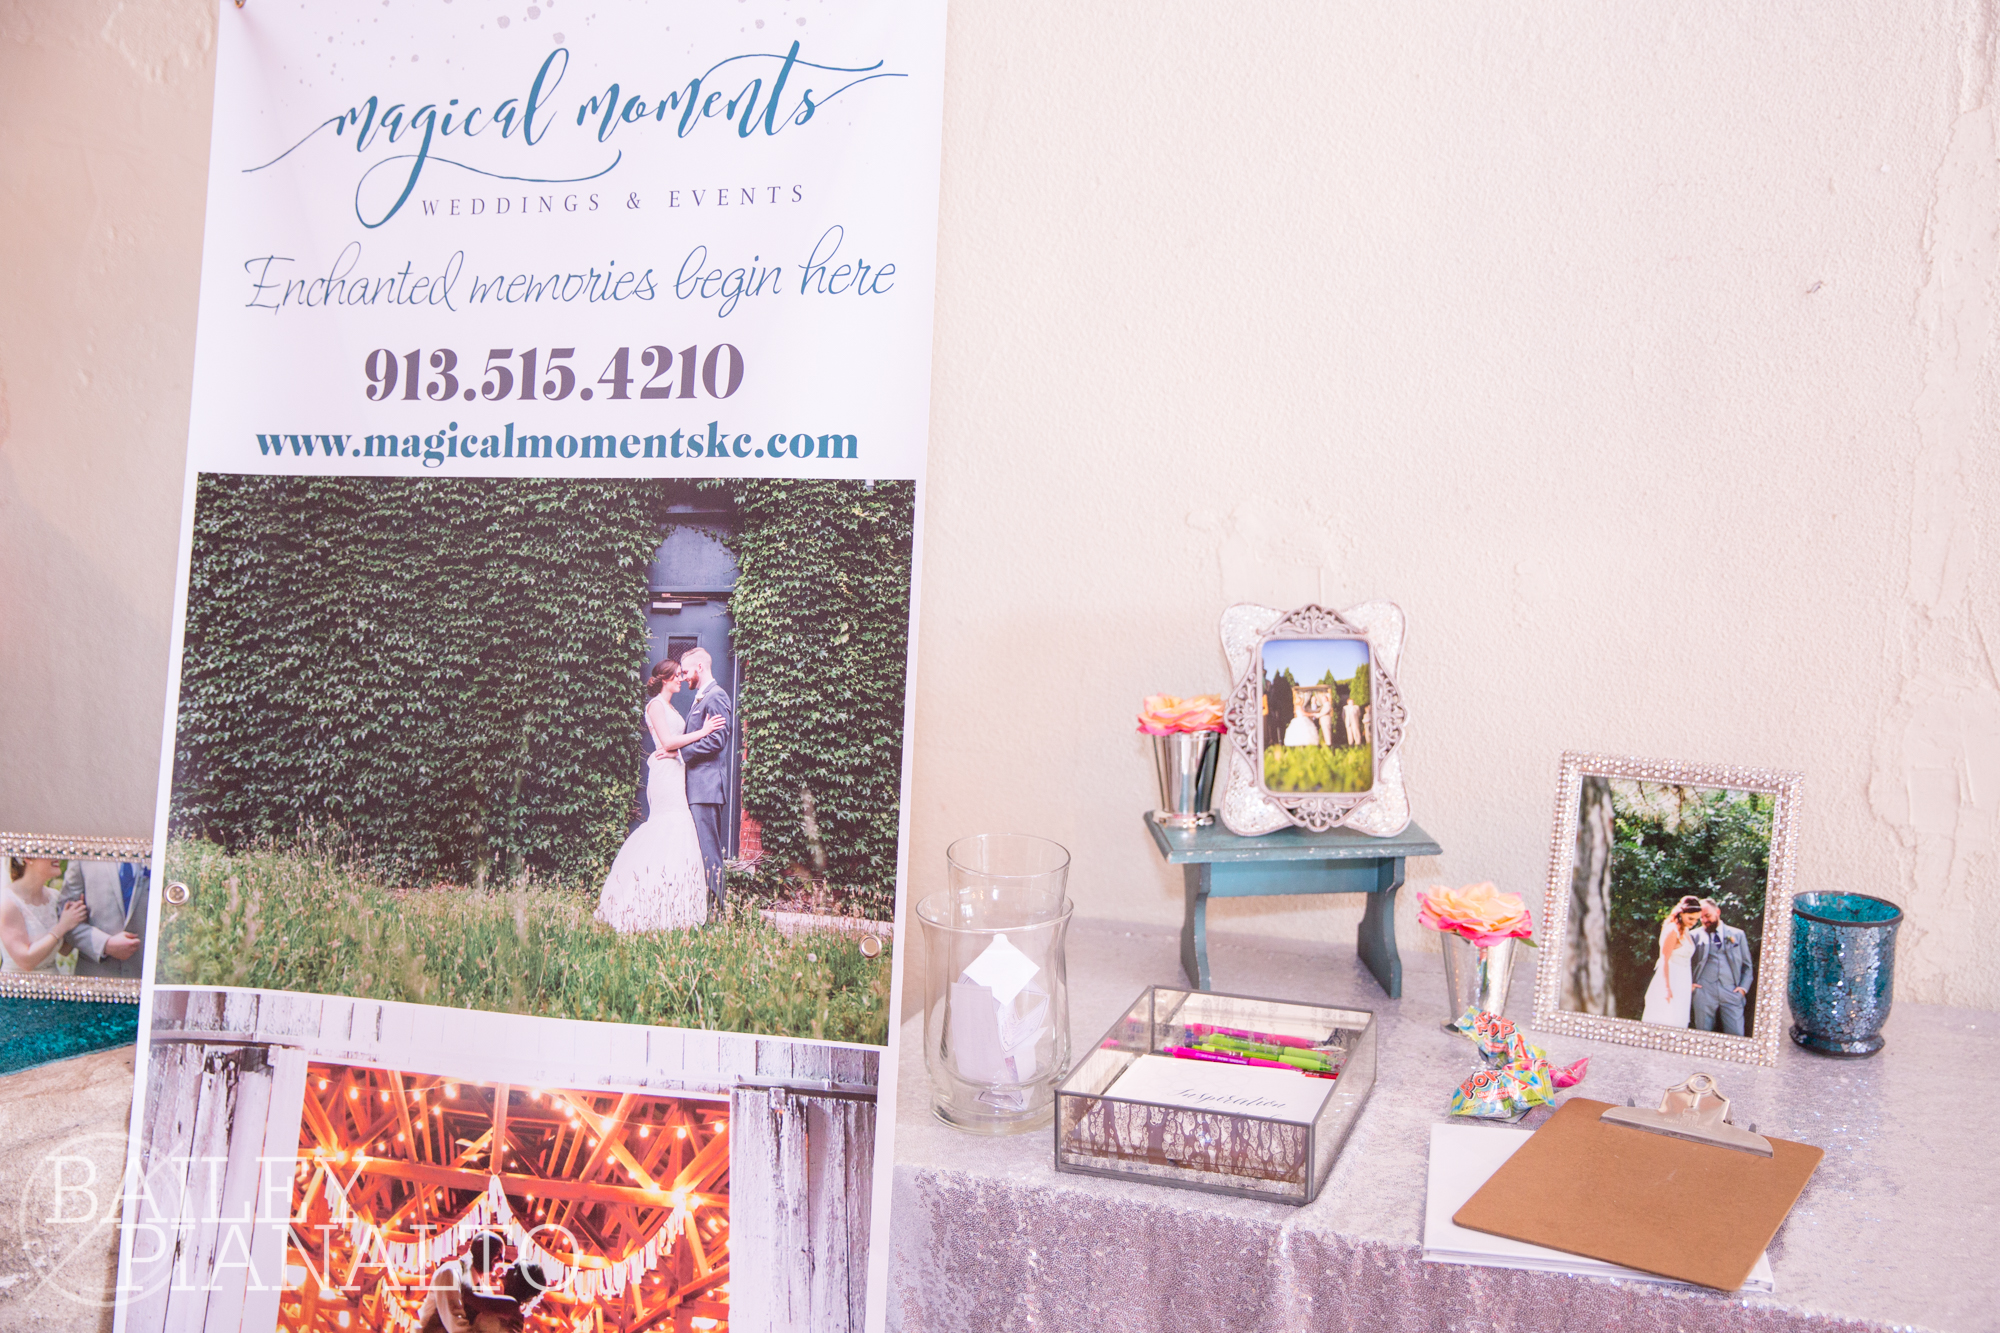 Magical Moments Weddings & Events